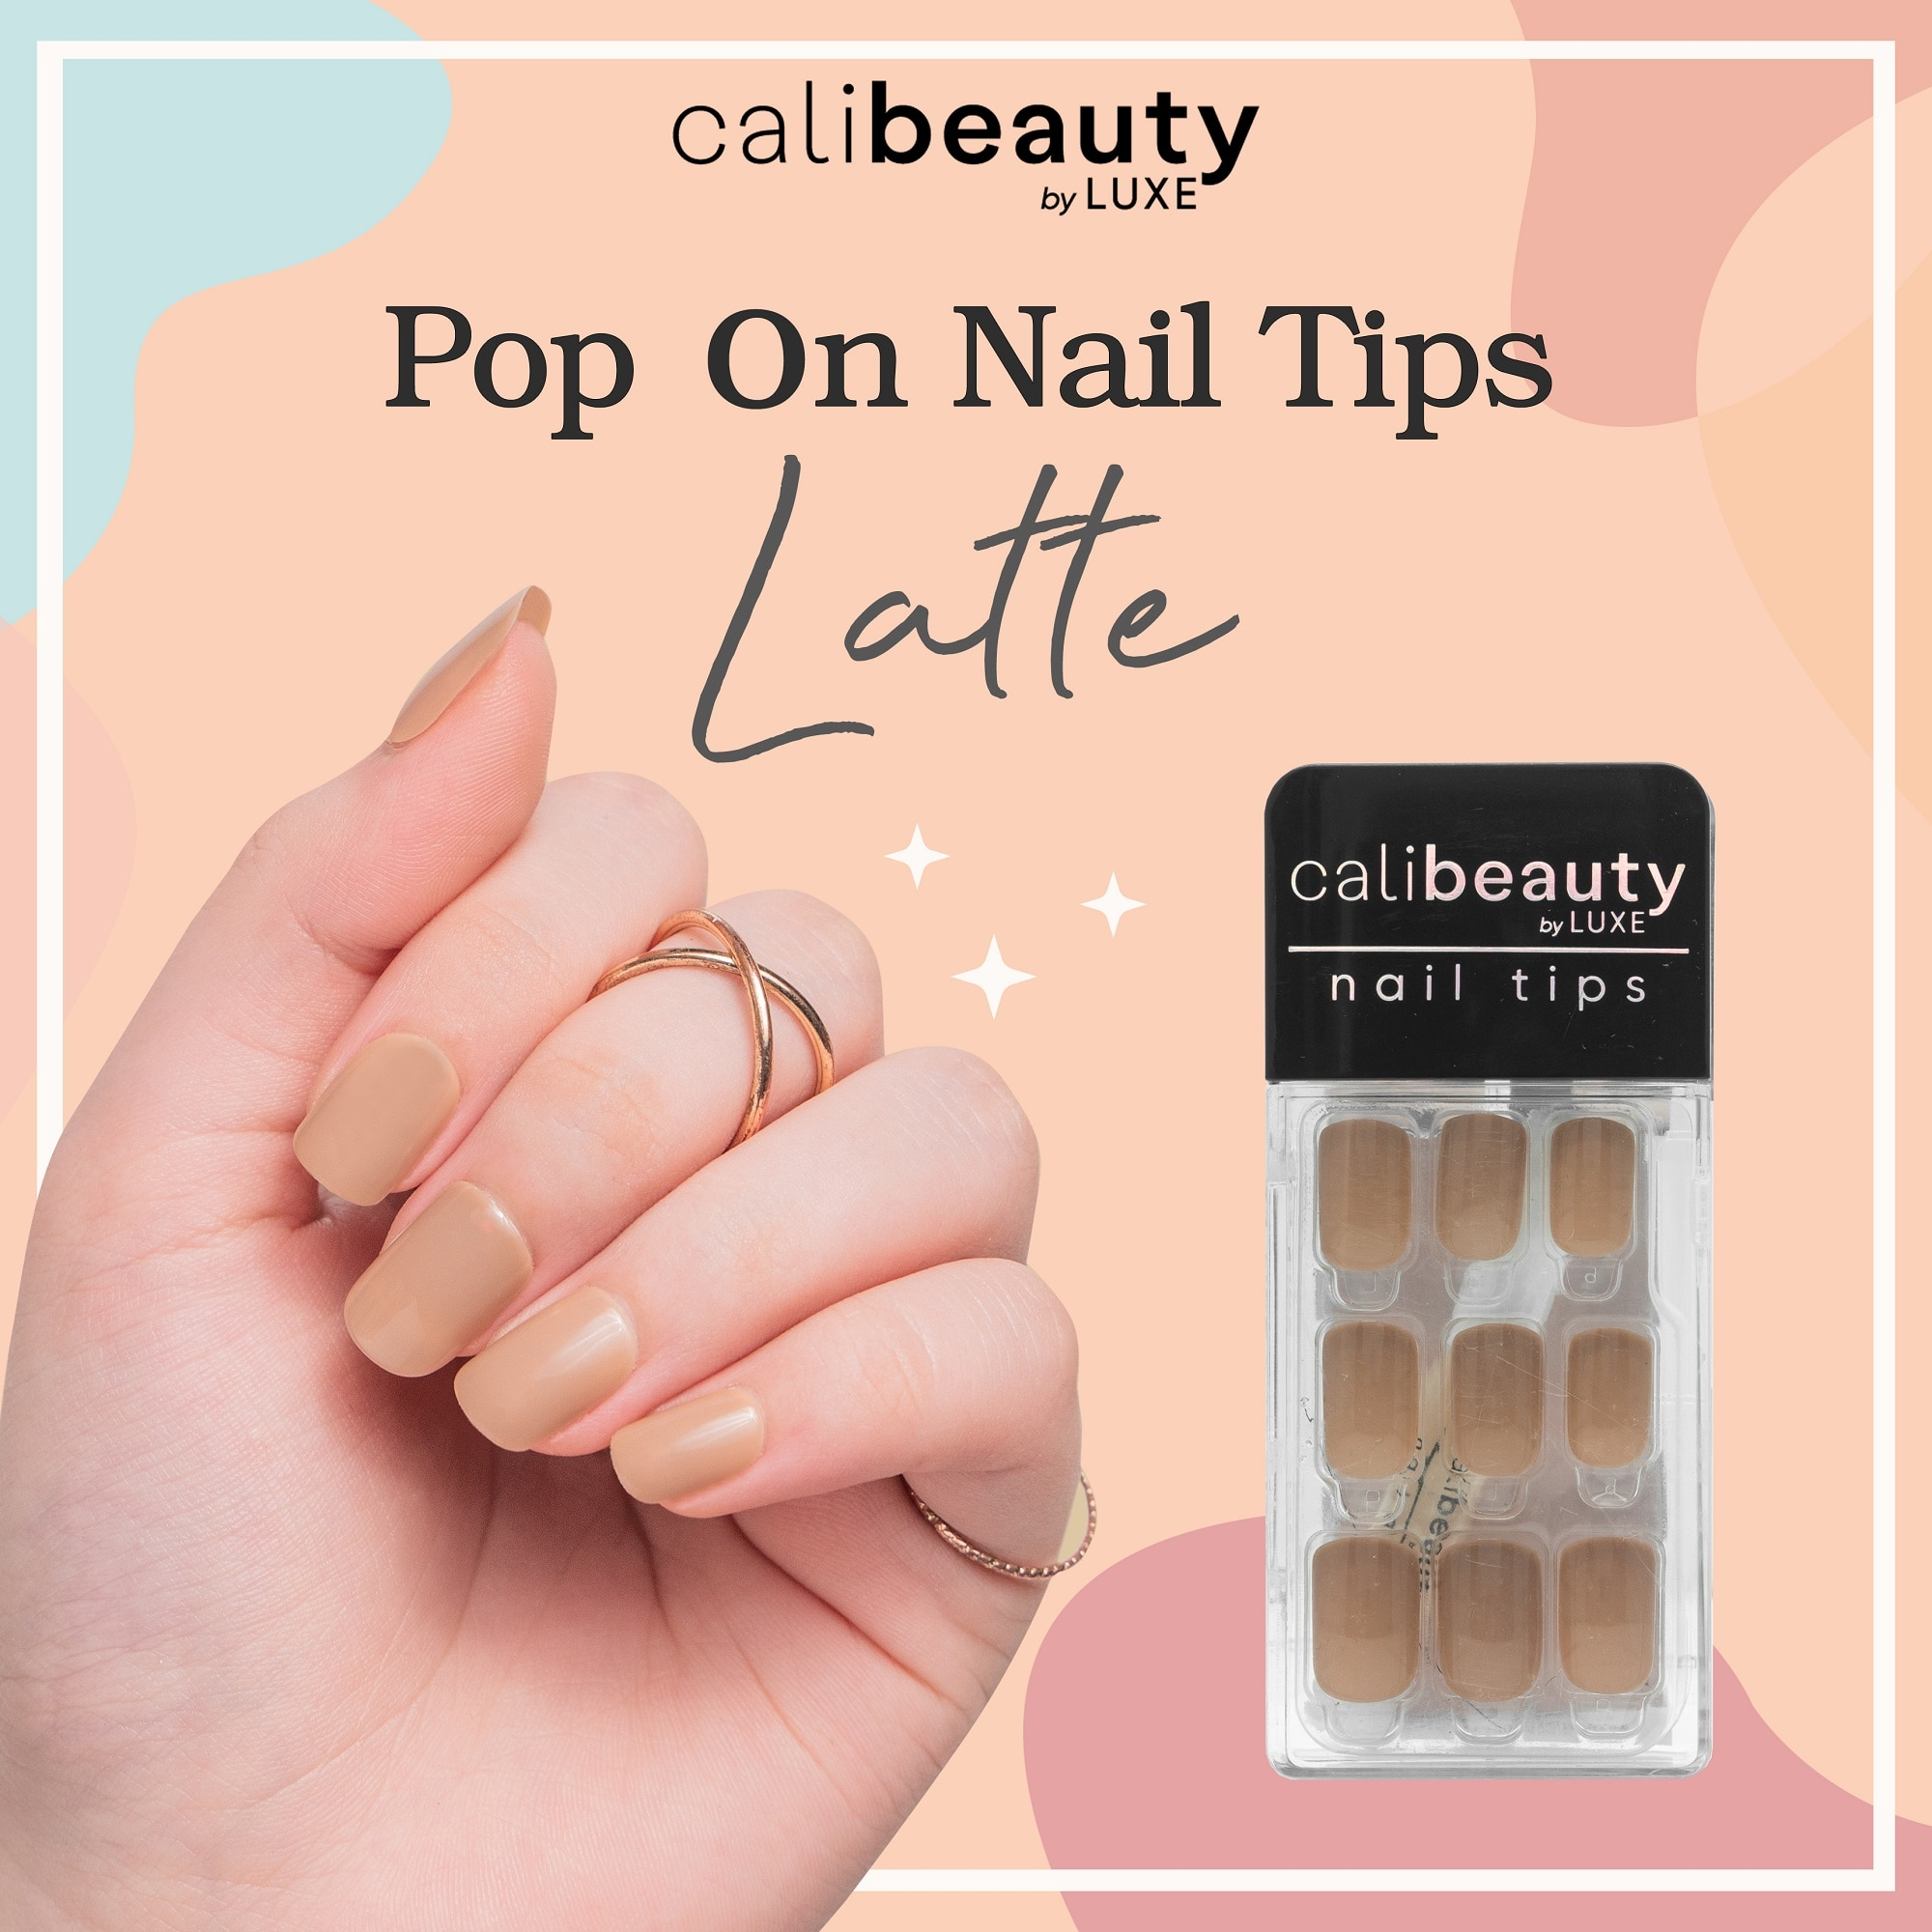 CALI BEAUTYNail Tips Latte 24 Tips,Nail Polish and AccessoriesKBeauty